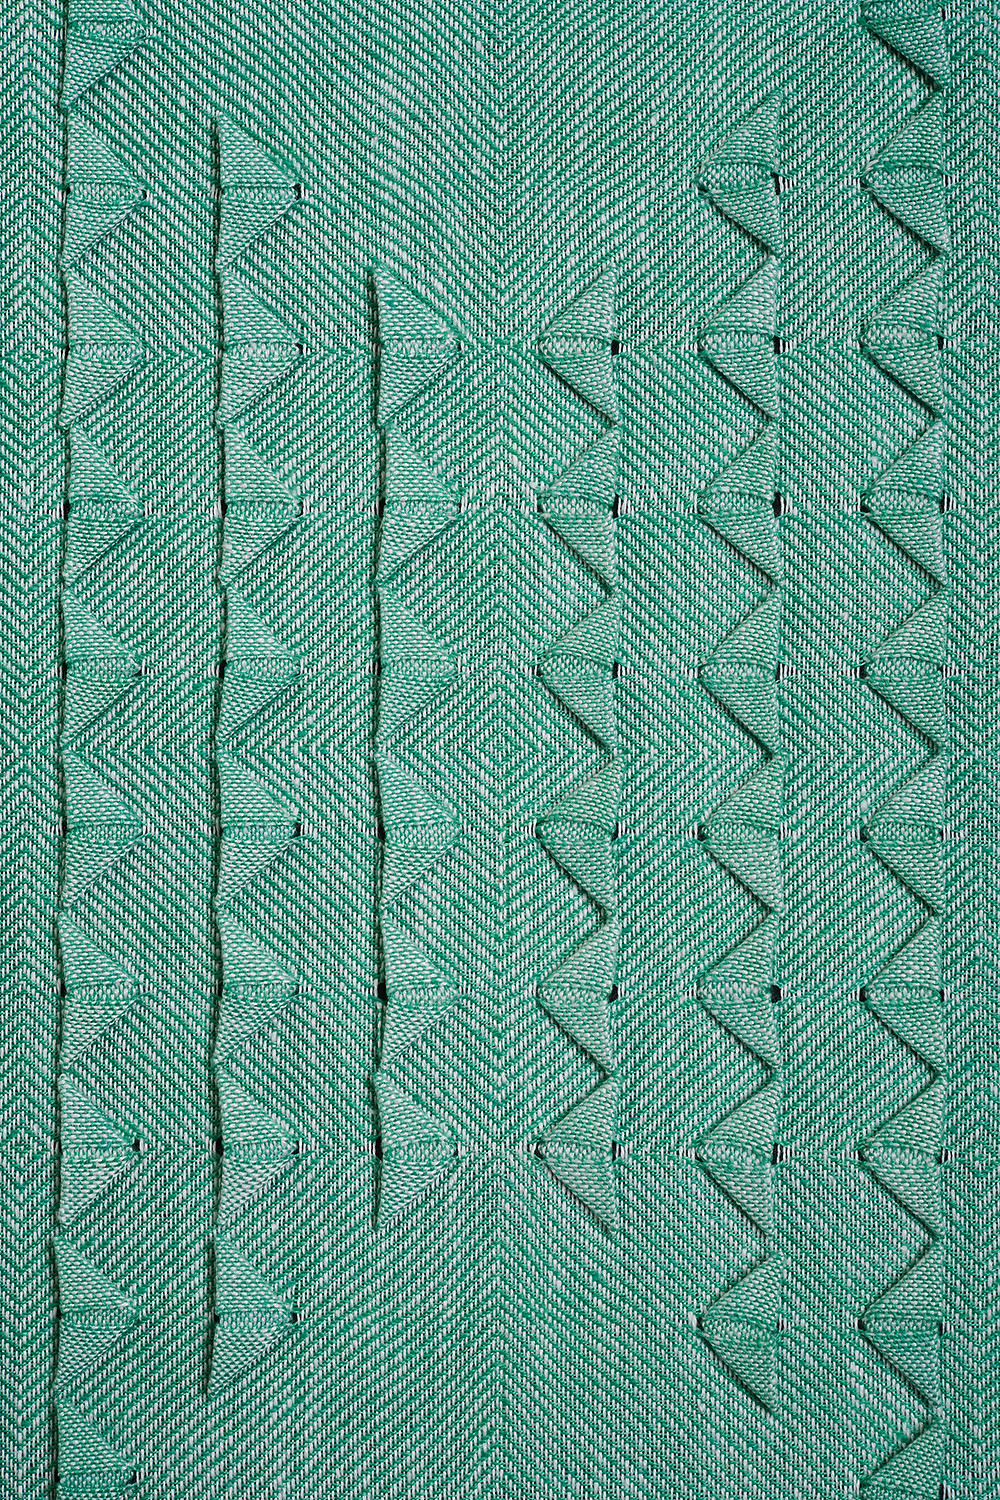 Green origami weaving by Susie Taylor